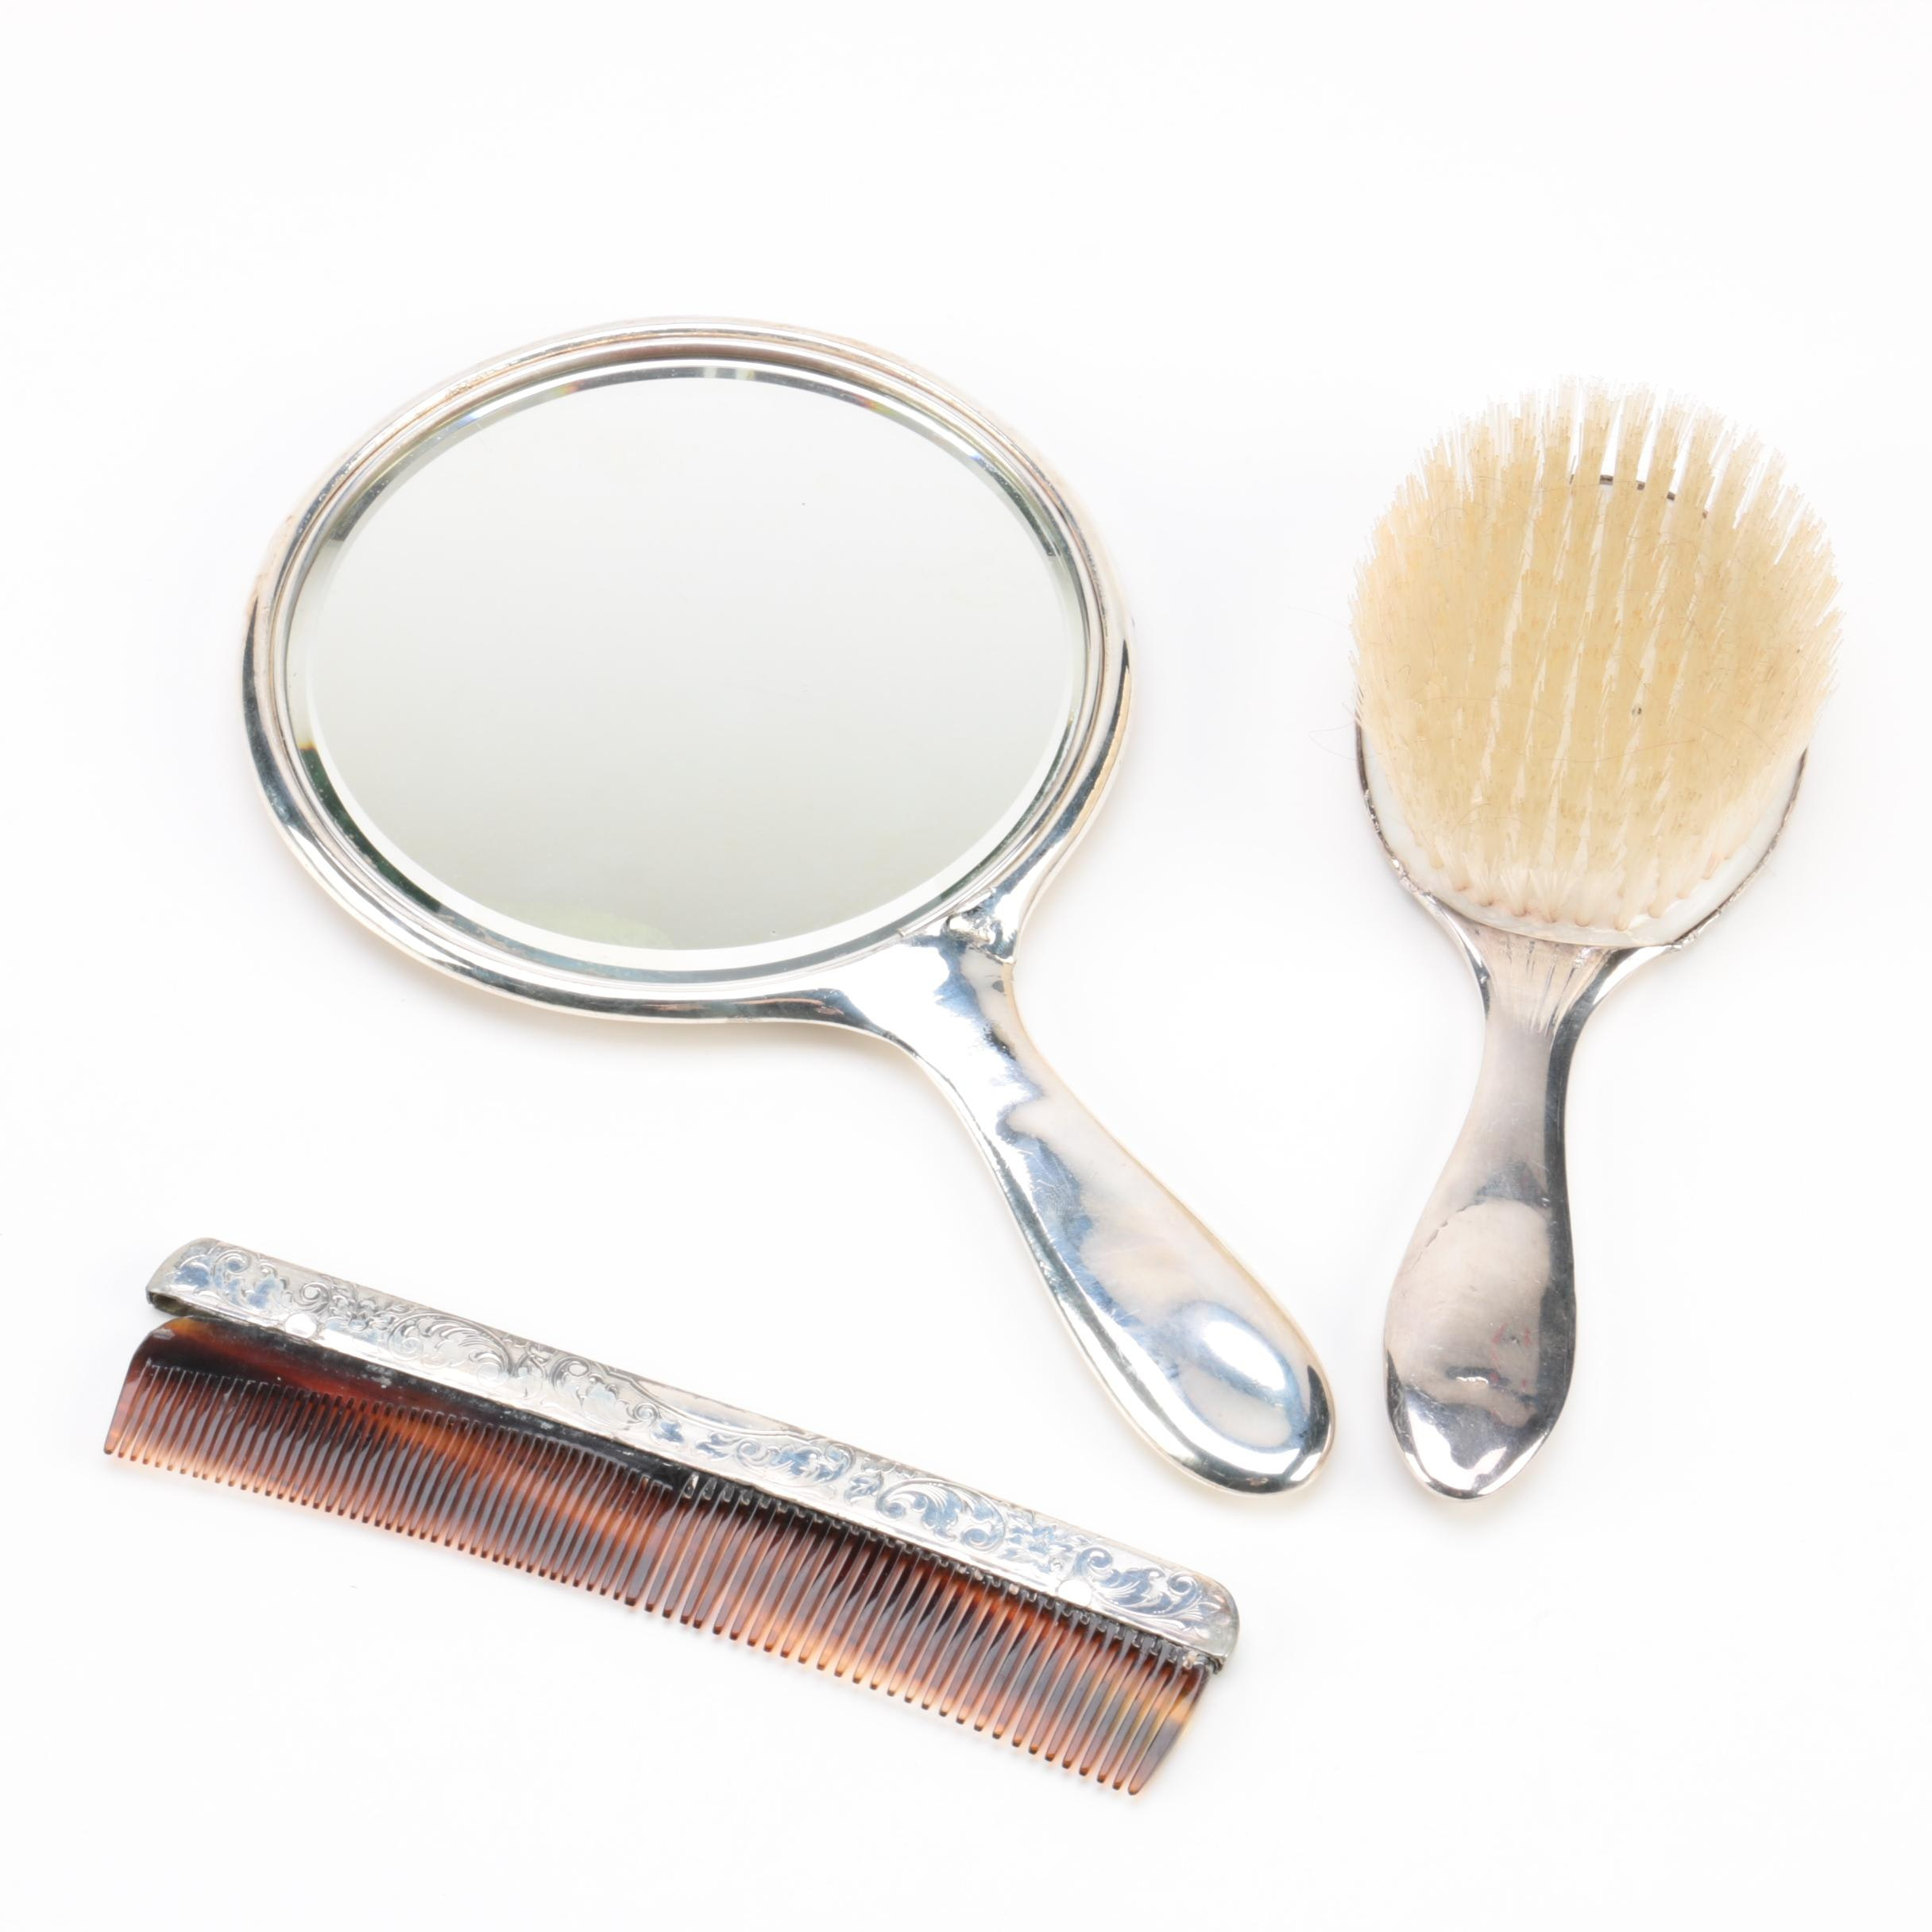 Homan Mfg. Co. Chased Silver Plate Vanity Accessory Set